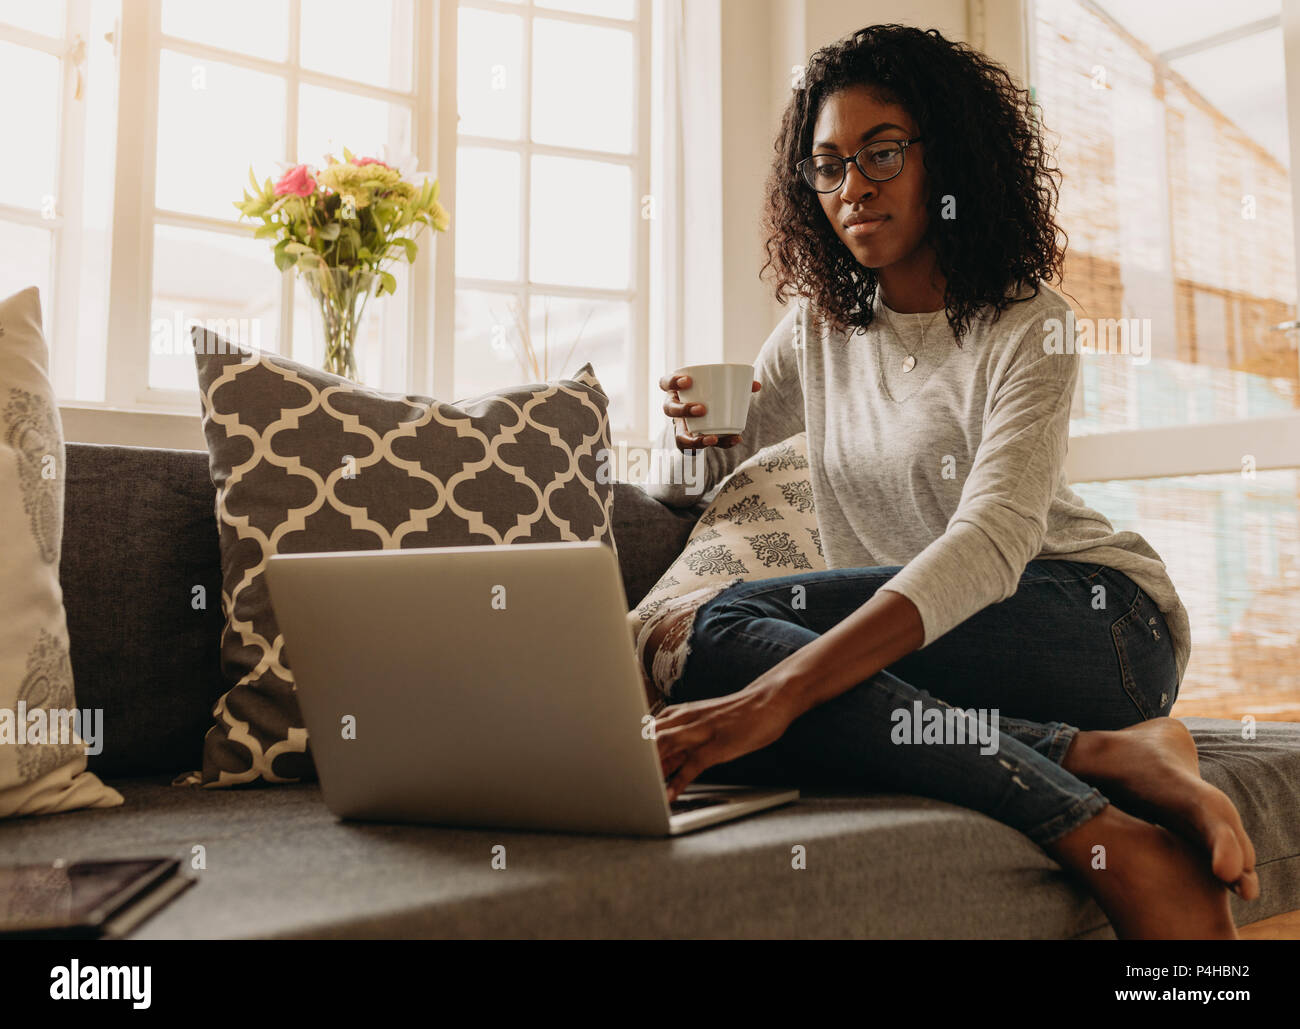 Businesswoman working on laptop computer assis à la maison tenant une tasse de café dans la main. Femme assise sur le canapé à la maison et la gestion de son entreprise. Photo Stock